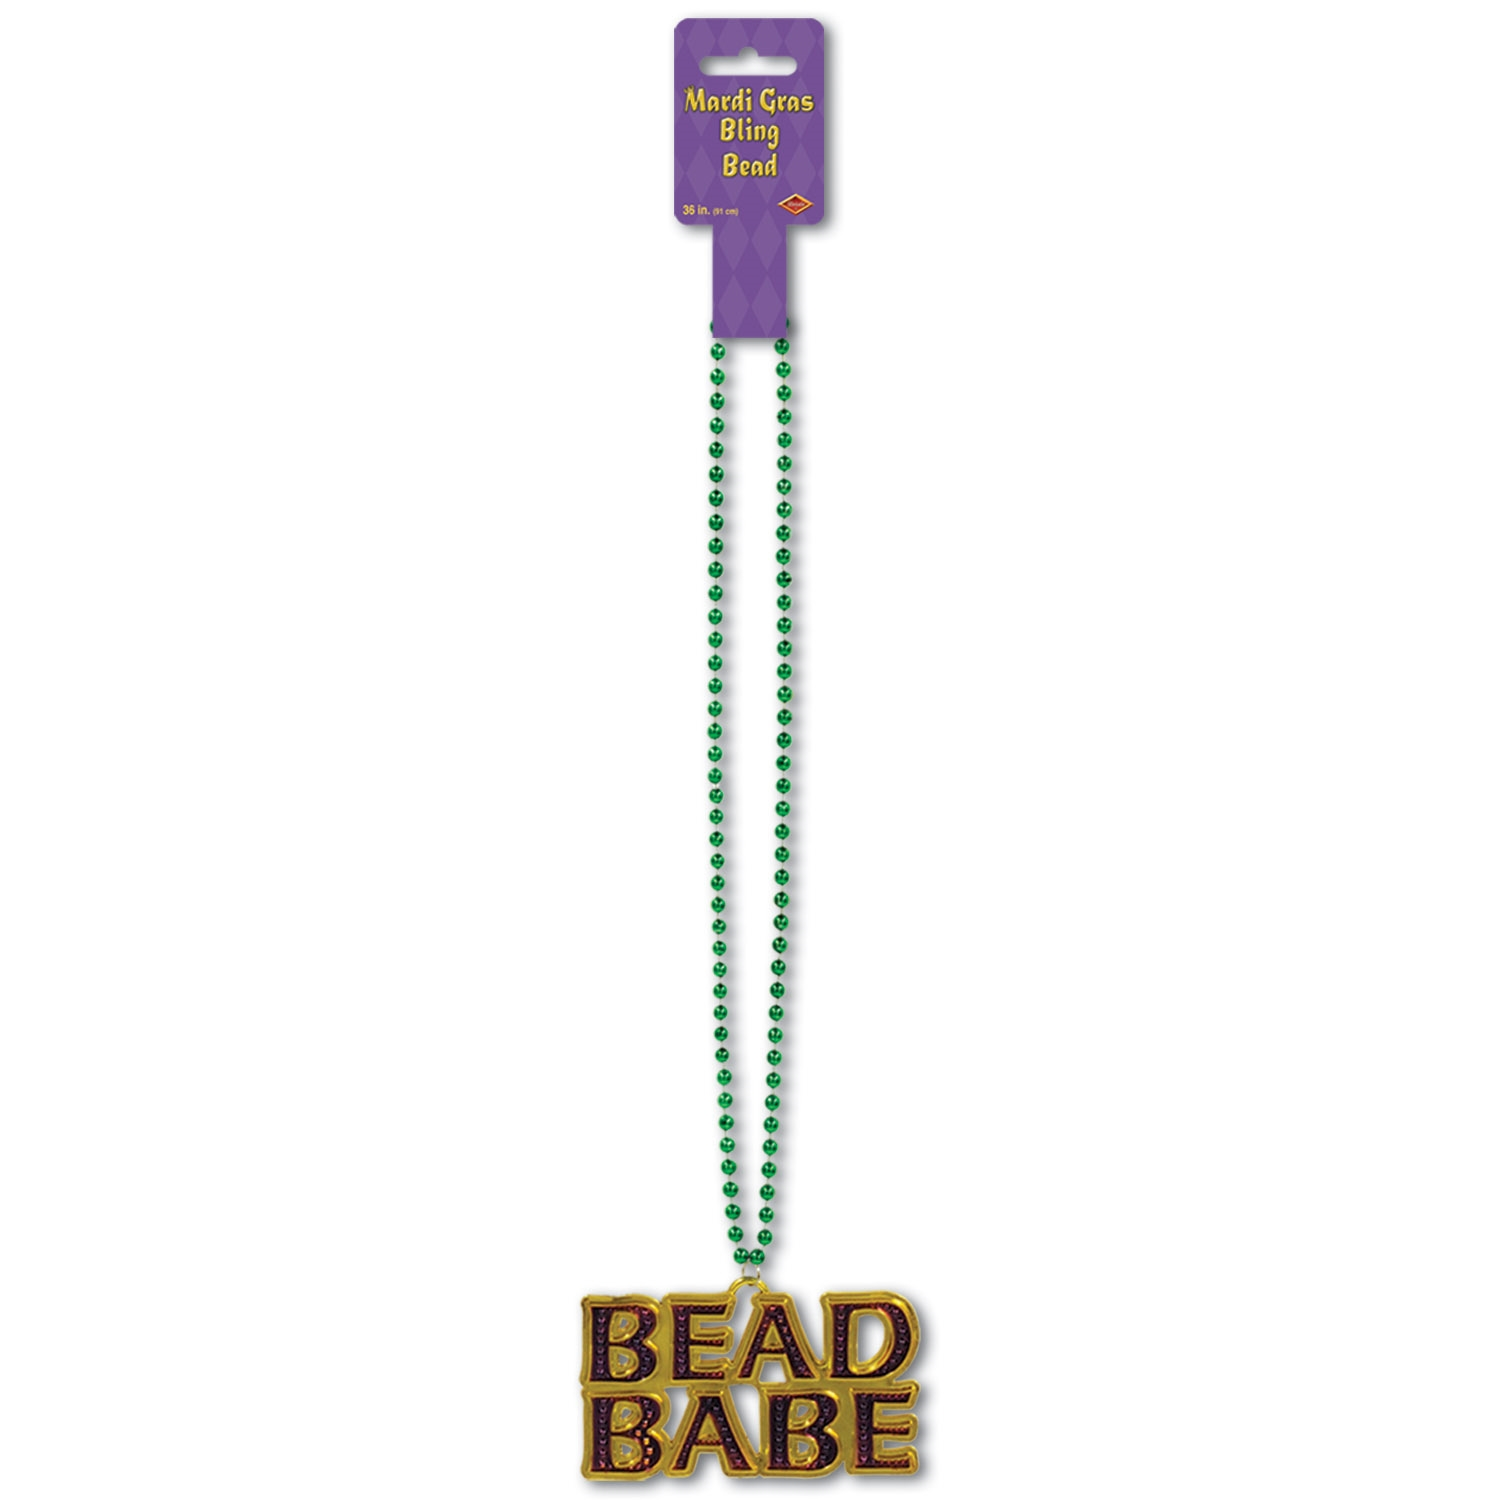 Beads w/Bead Babe Medallion (Pack of 12) Beads with Bead Babe Medallion, beads, mardi gras, party favor, wholesale, inexpensive, bulk